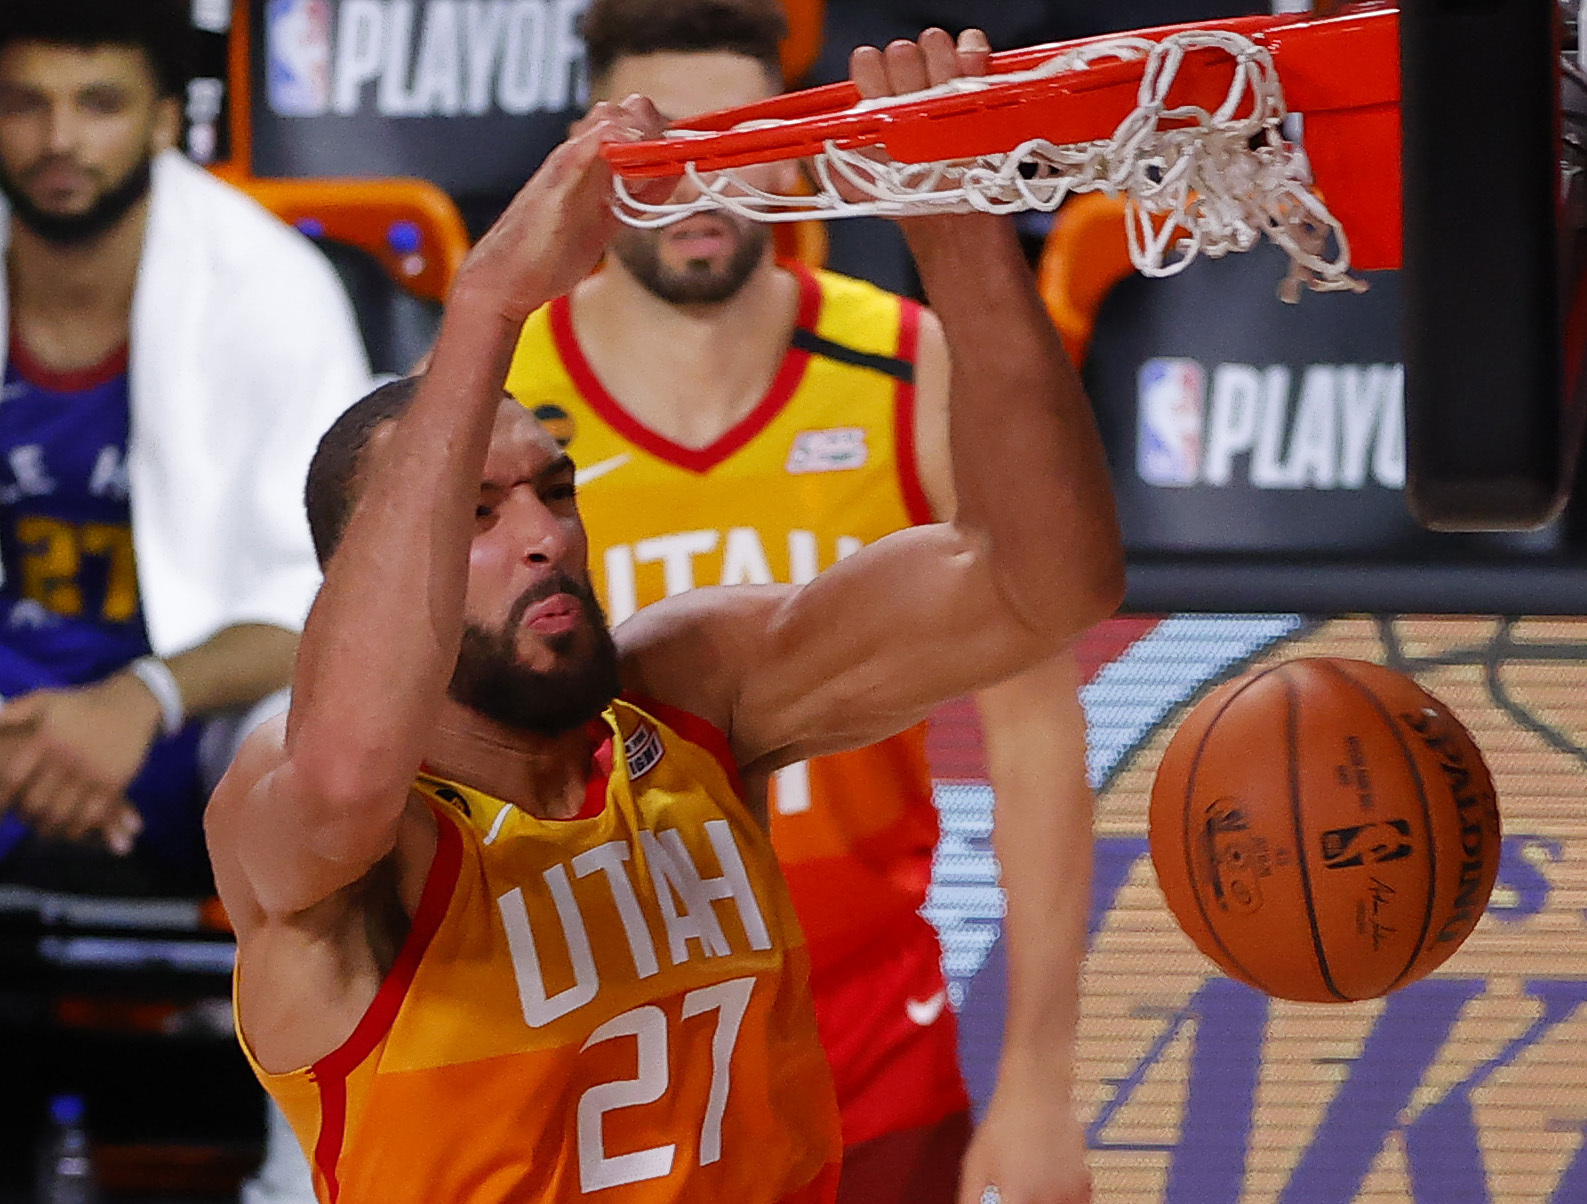 Utah Jazz's Rudy Gobert dunks against the Denver Nuggets during the third quarter in Game 4 of an NBA basketball first-round playoff series, Sunday, Aug. 23, 2020, in Lake Buena Vista, Fla. (Kevin C. Cox/Pool Photo via AP)